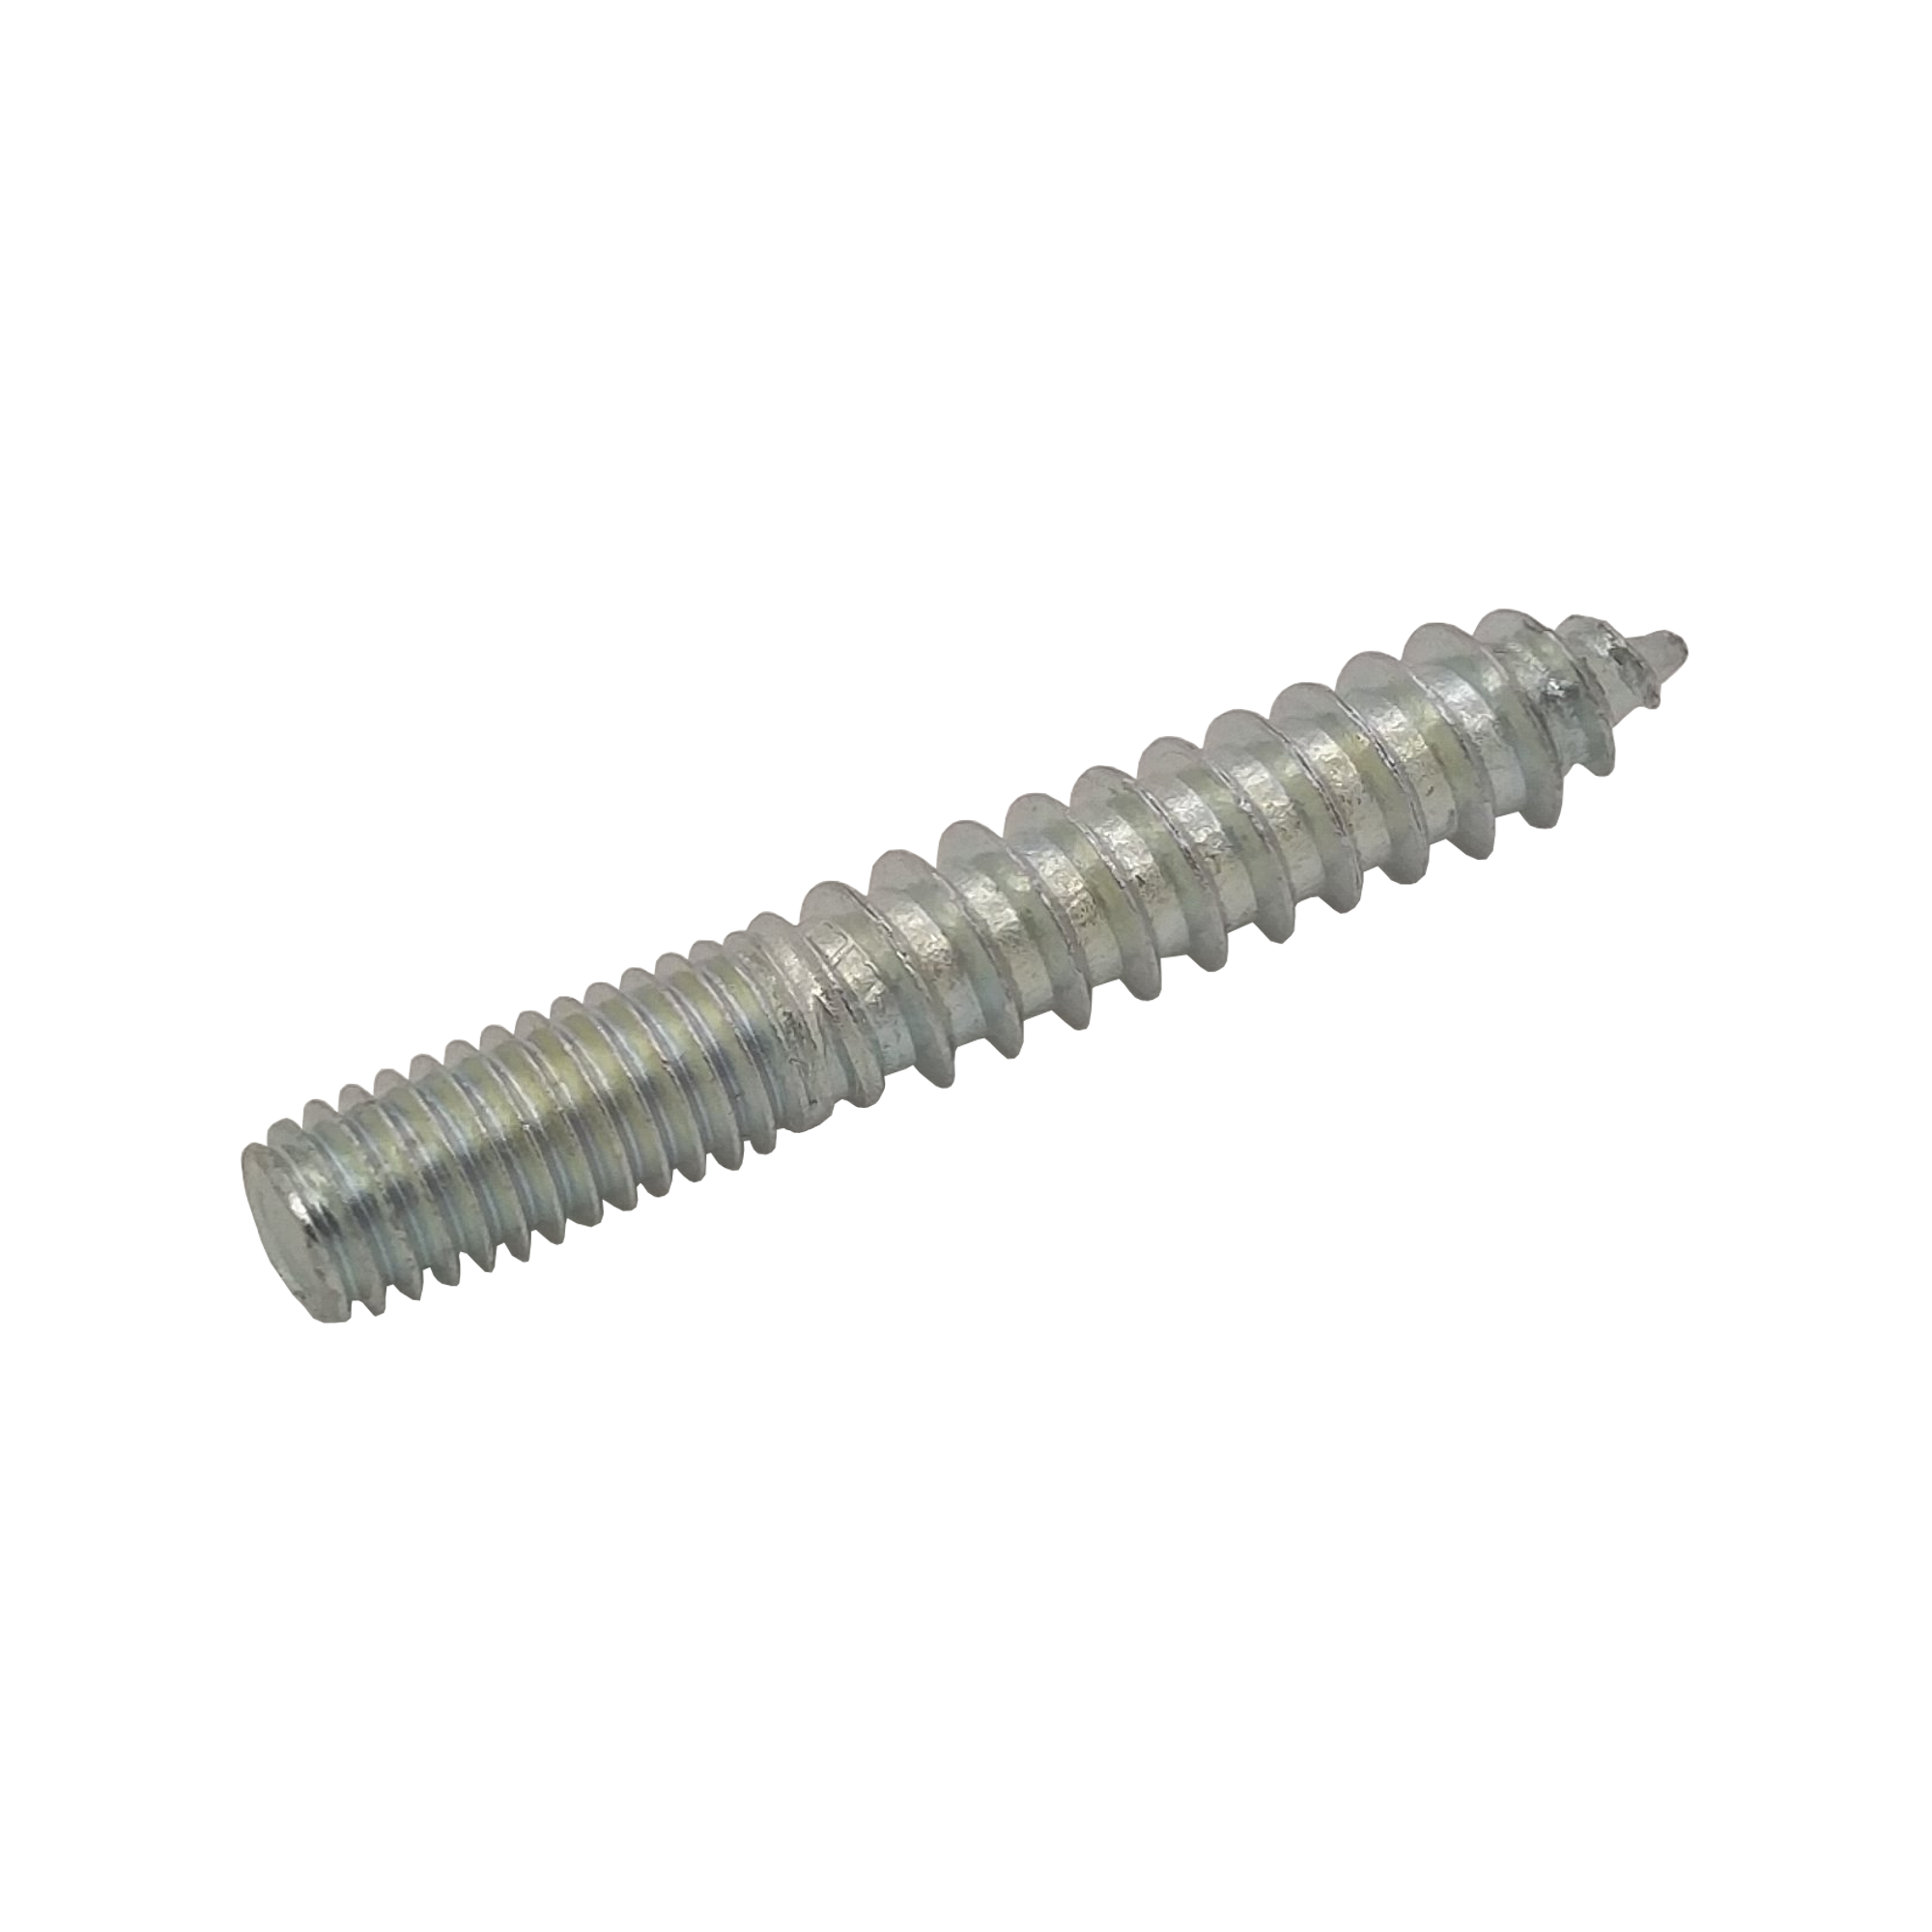 M6 BZP Dual Thread Screw 25mm Wood to 15mm Metal